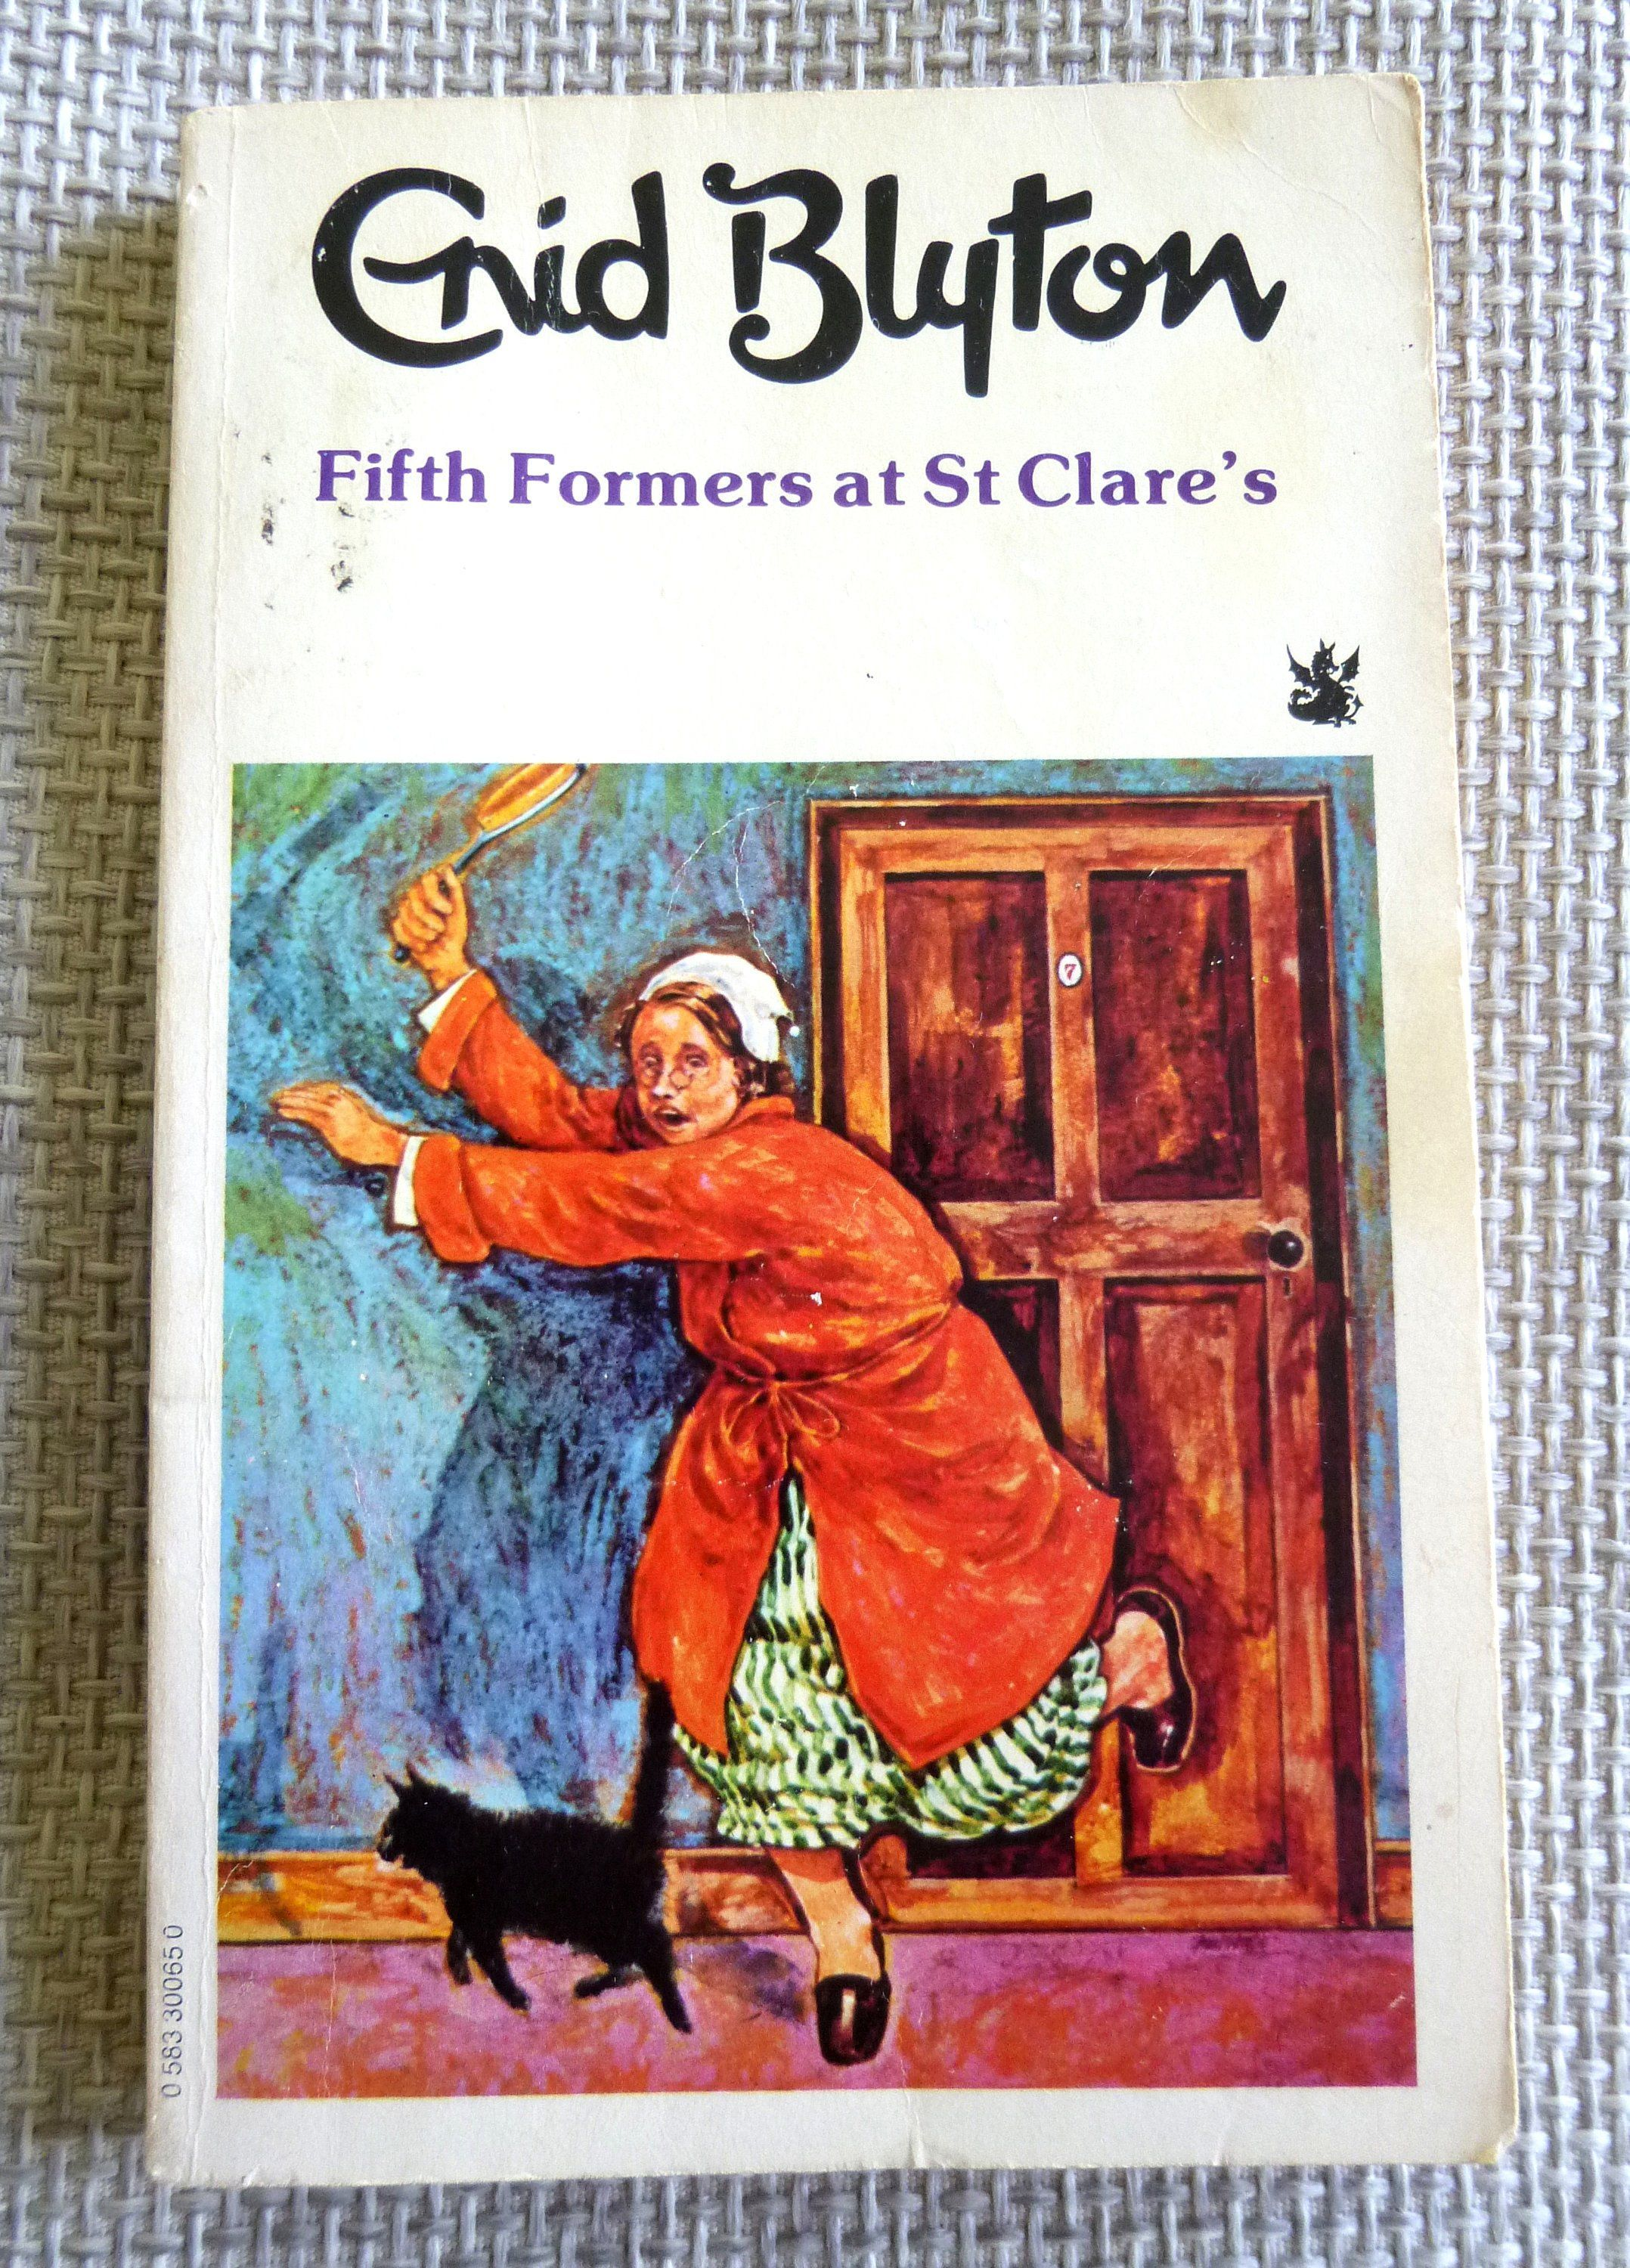 Fifth Formers At St Clare S By Enid Blyton Vintage Paperback Book St Clare S Antique Books Enid Blyton Books